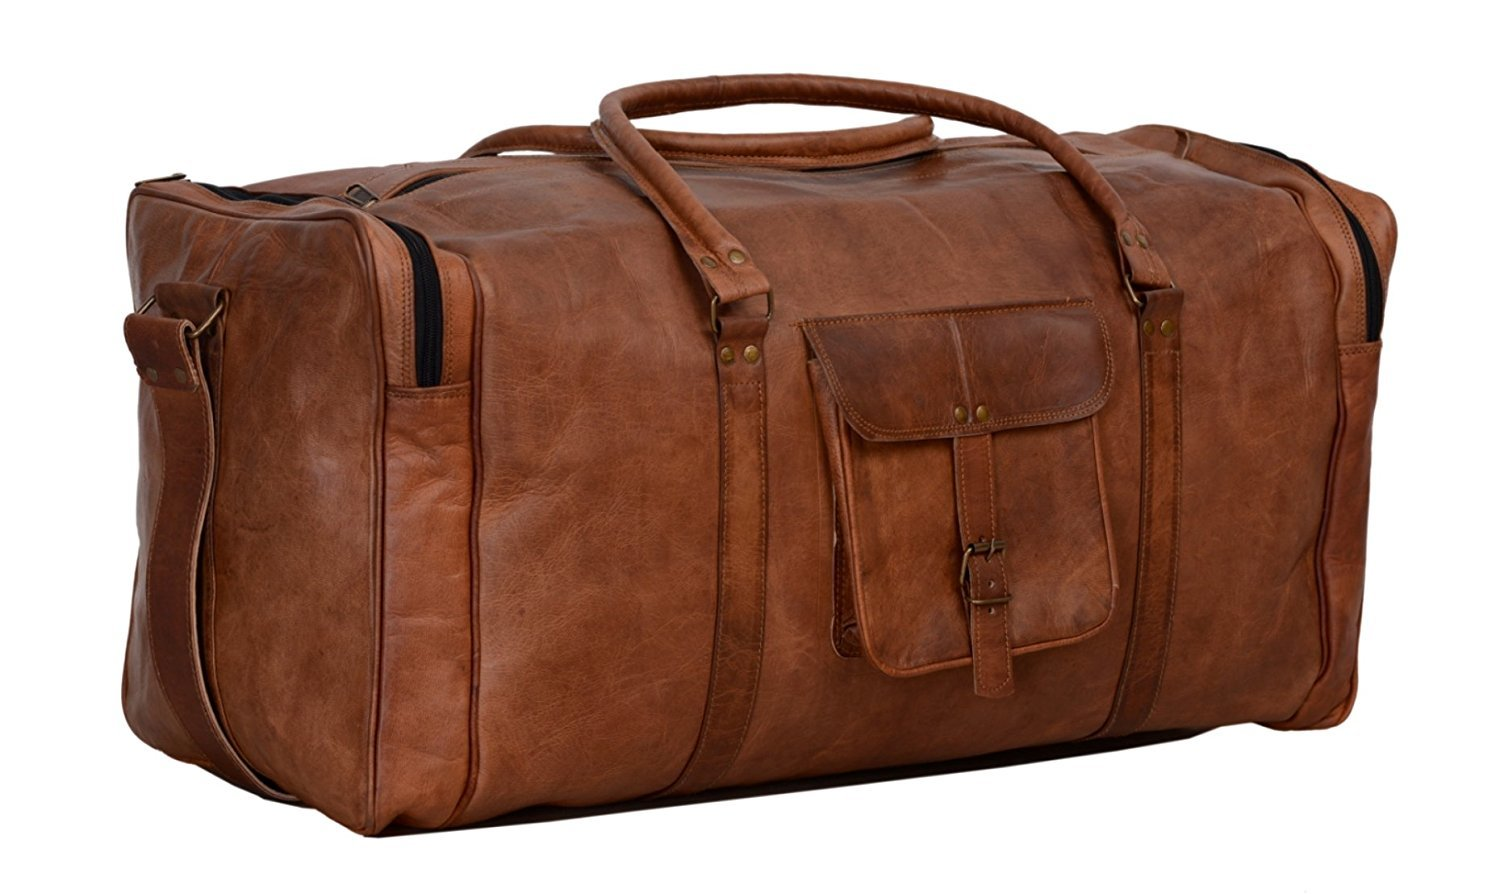 30 Inch Large Leather Duffel Travel Duffle Gym Sports Overnight Weekender Bag